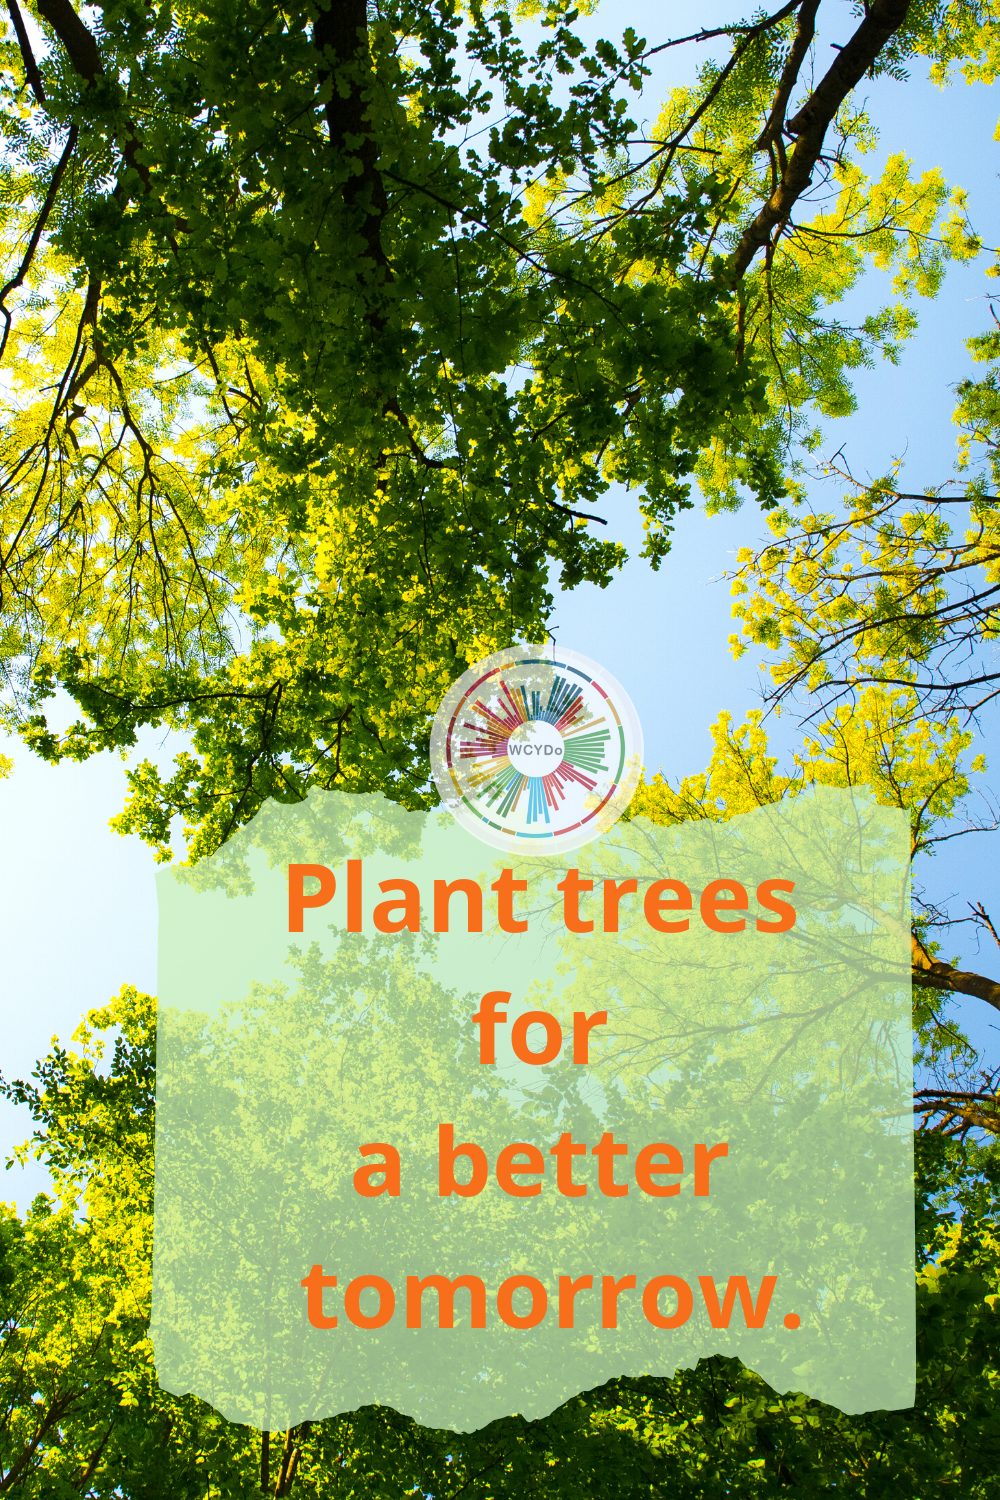 Plant trees for a better tomorrow! 🌳☘️🌲 in 2020 Trees